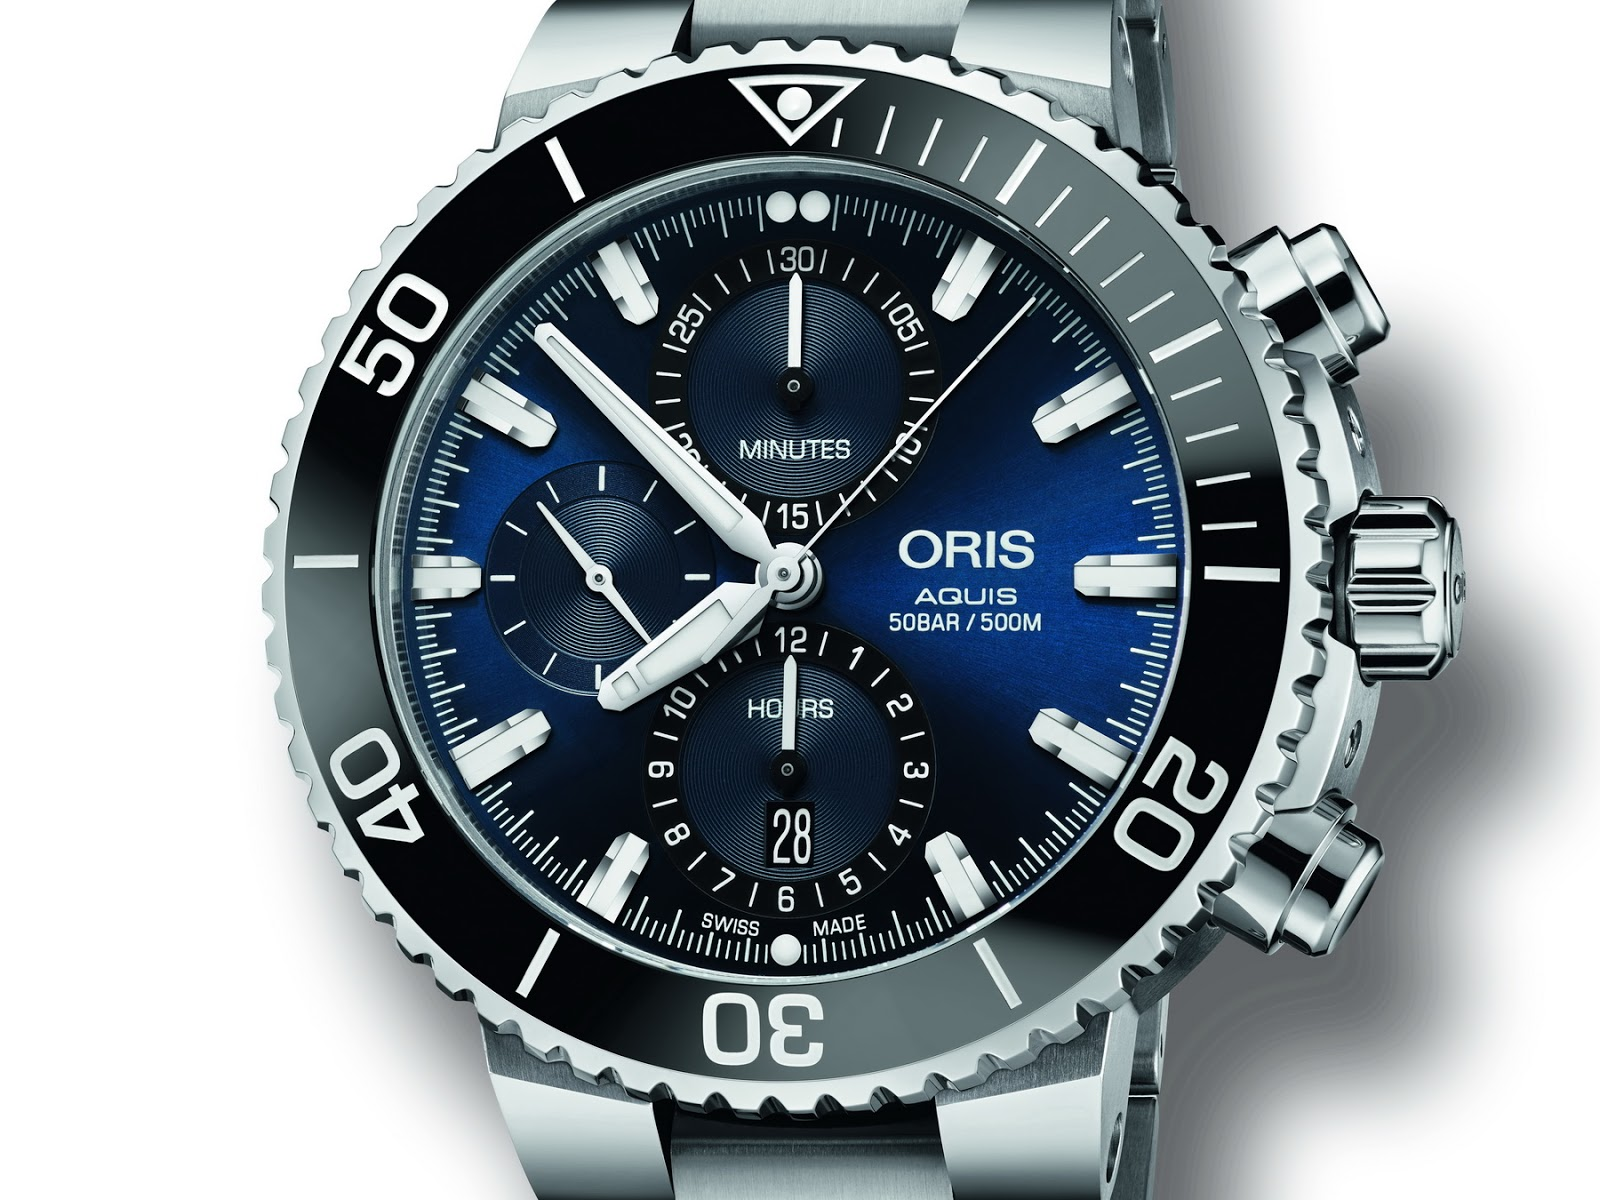 watches re were oris vayp a varsity we hail away s giving watch